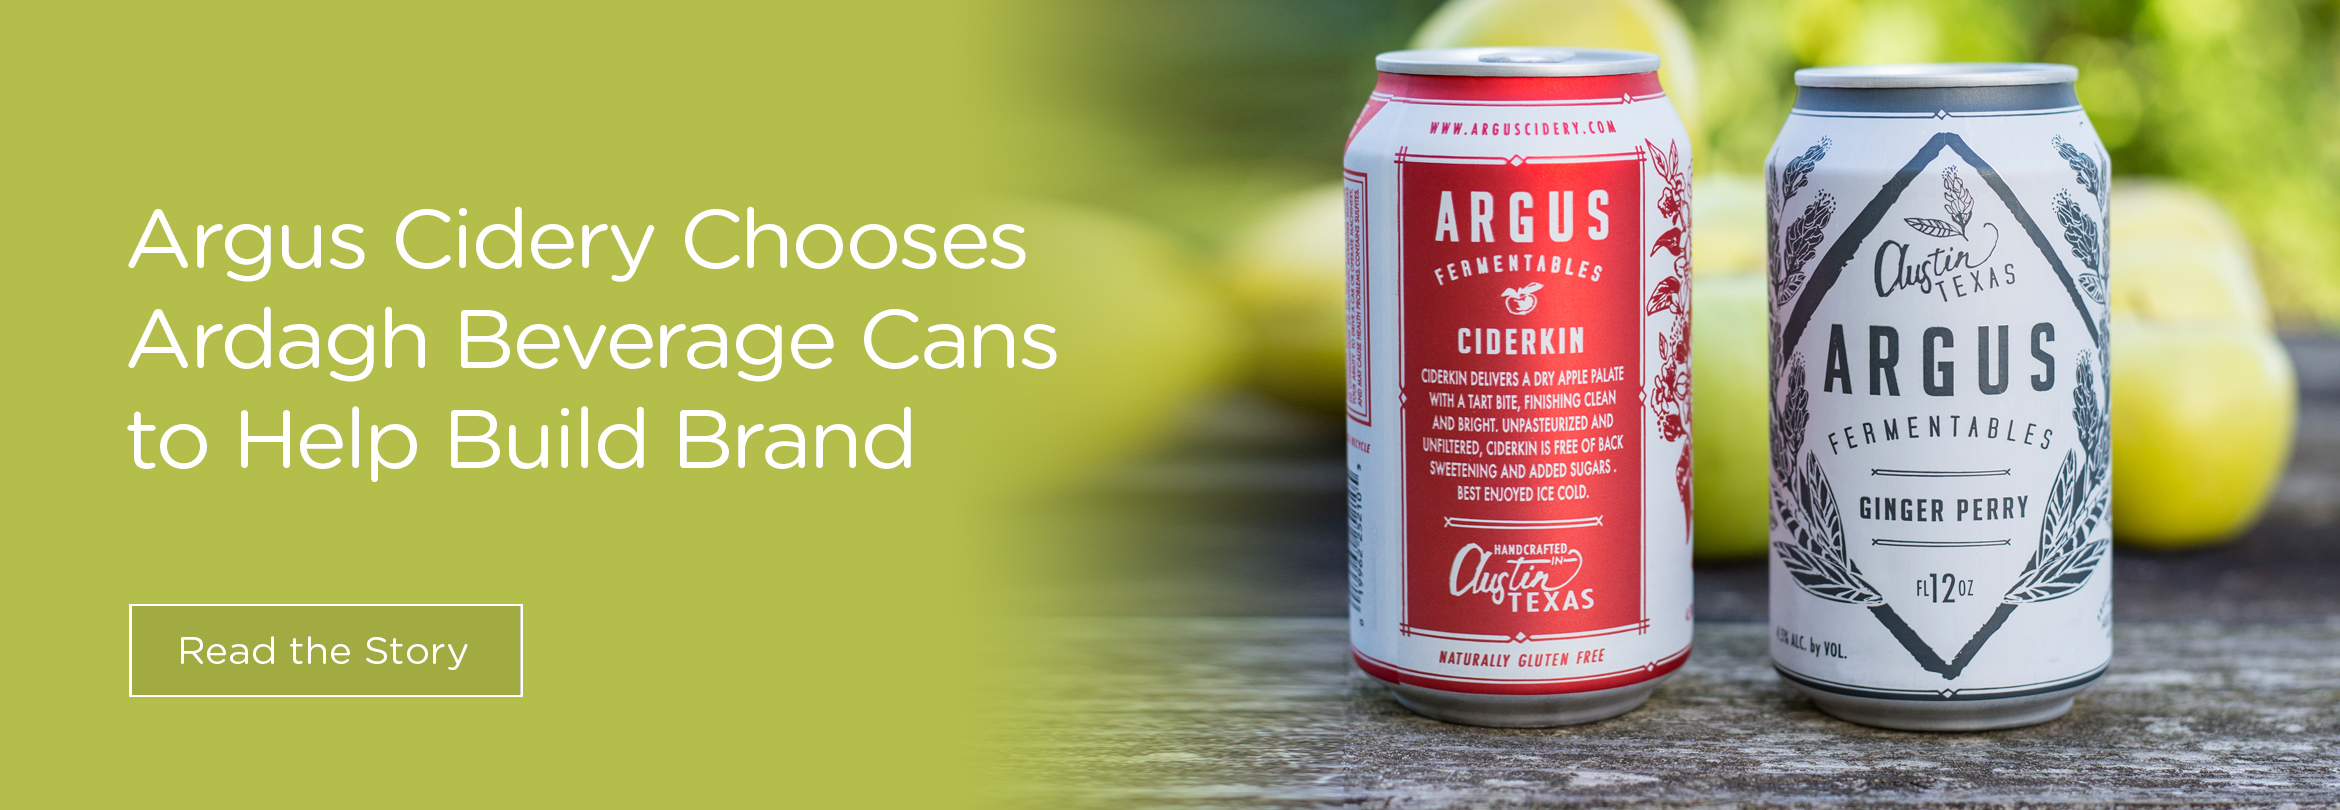 Argus Cidery Choose Ardagh Beverage Cans